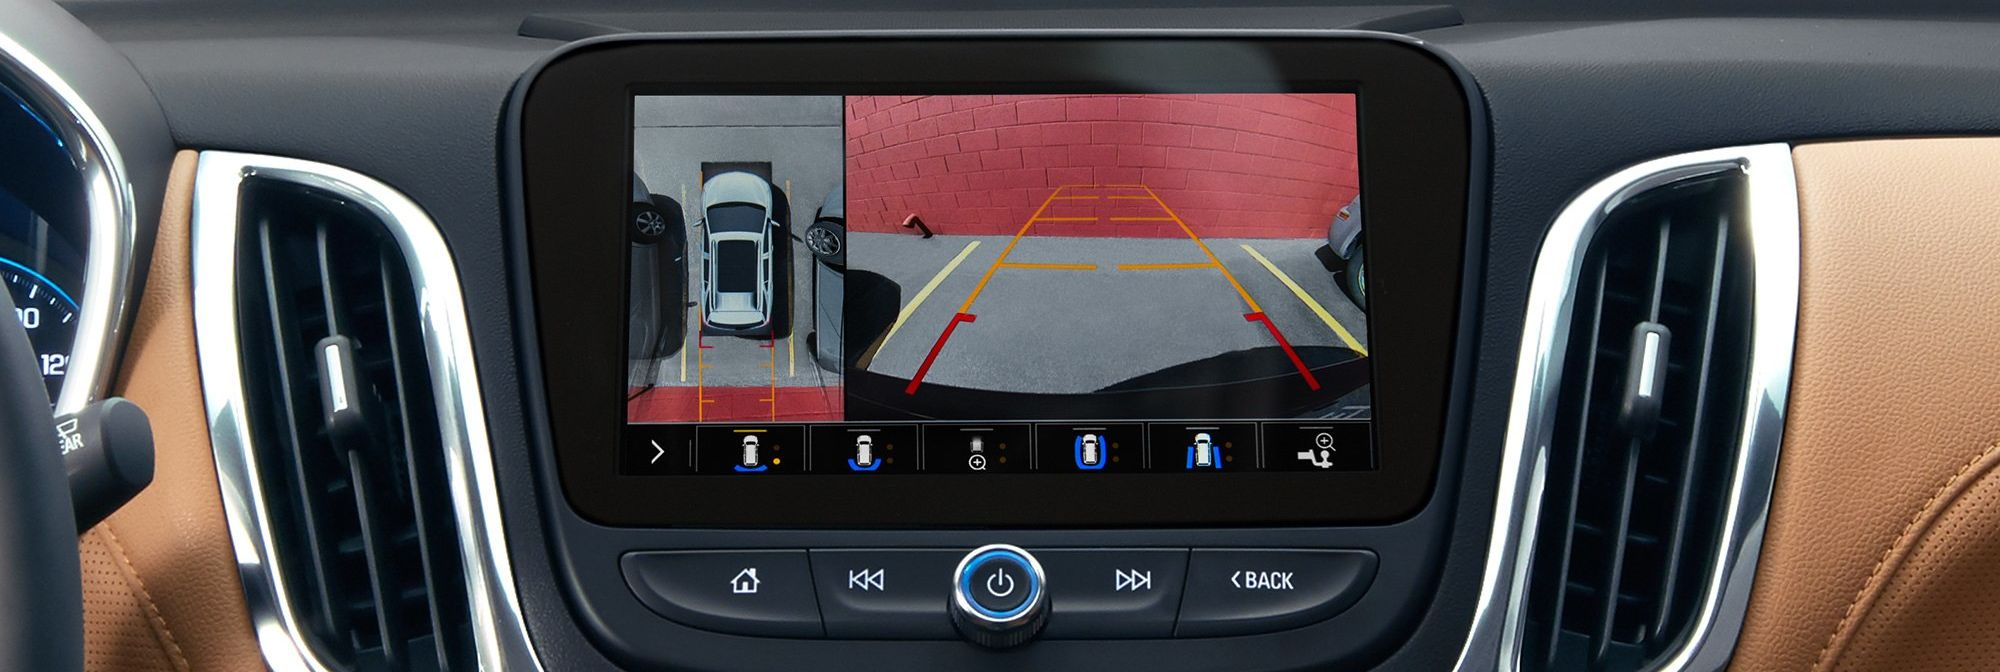 Backup Camera in the 2019 Equinox